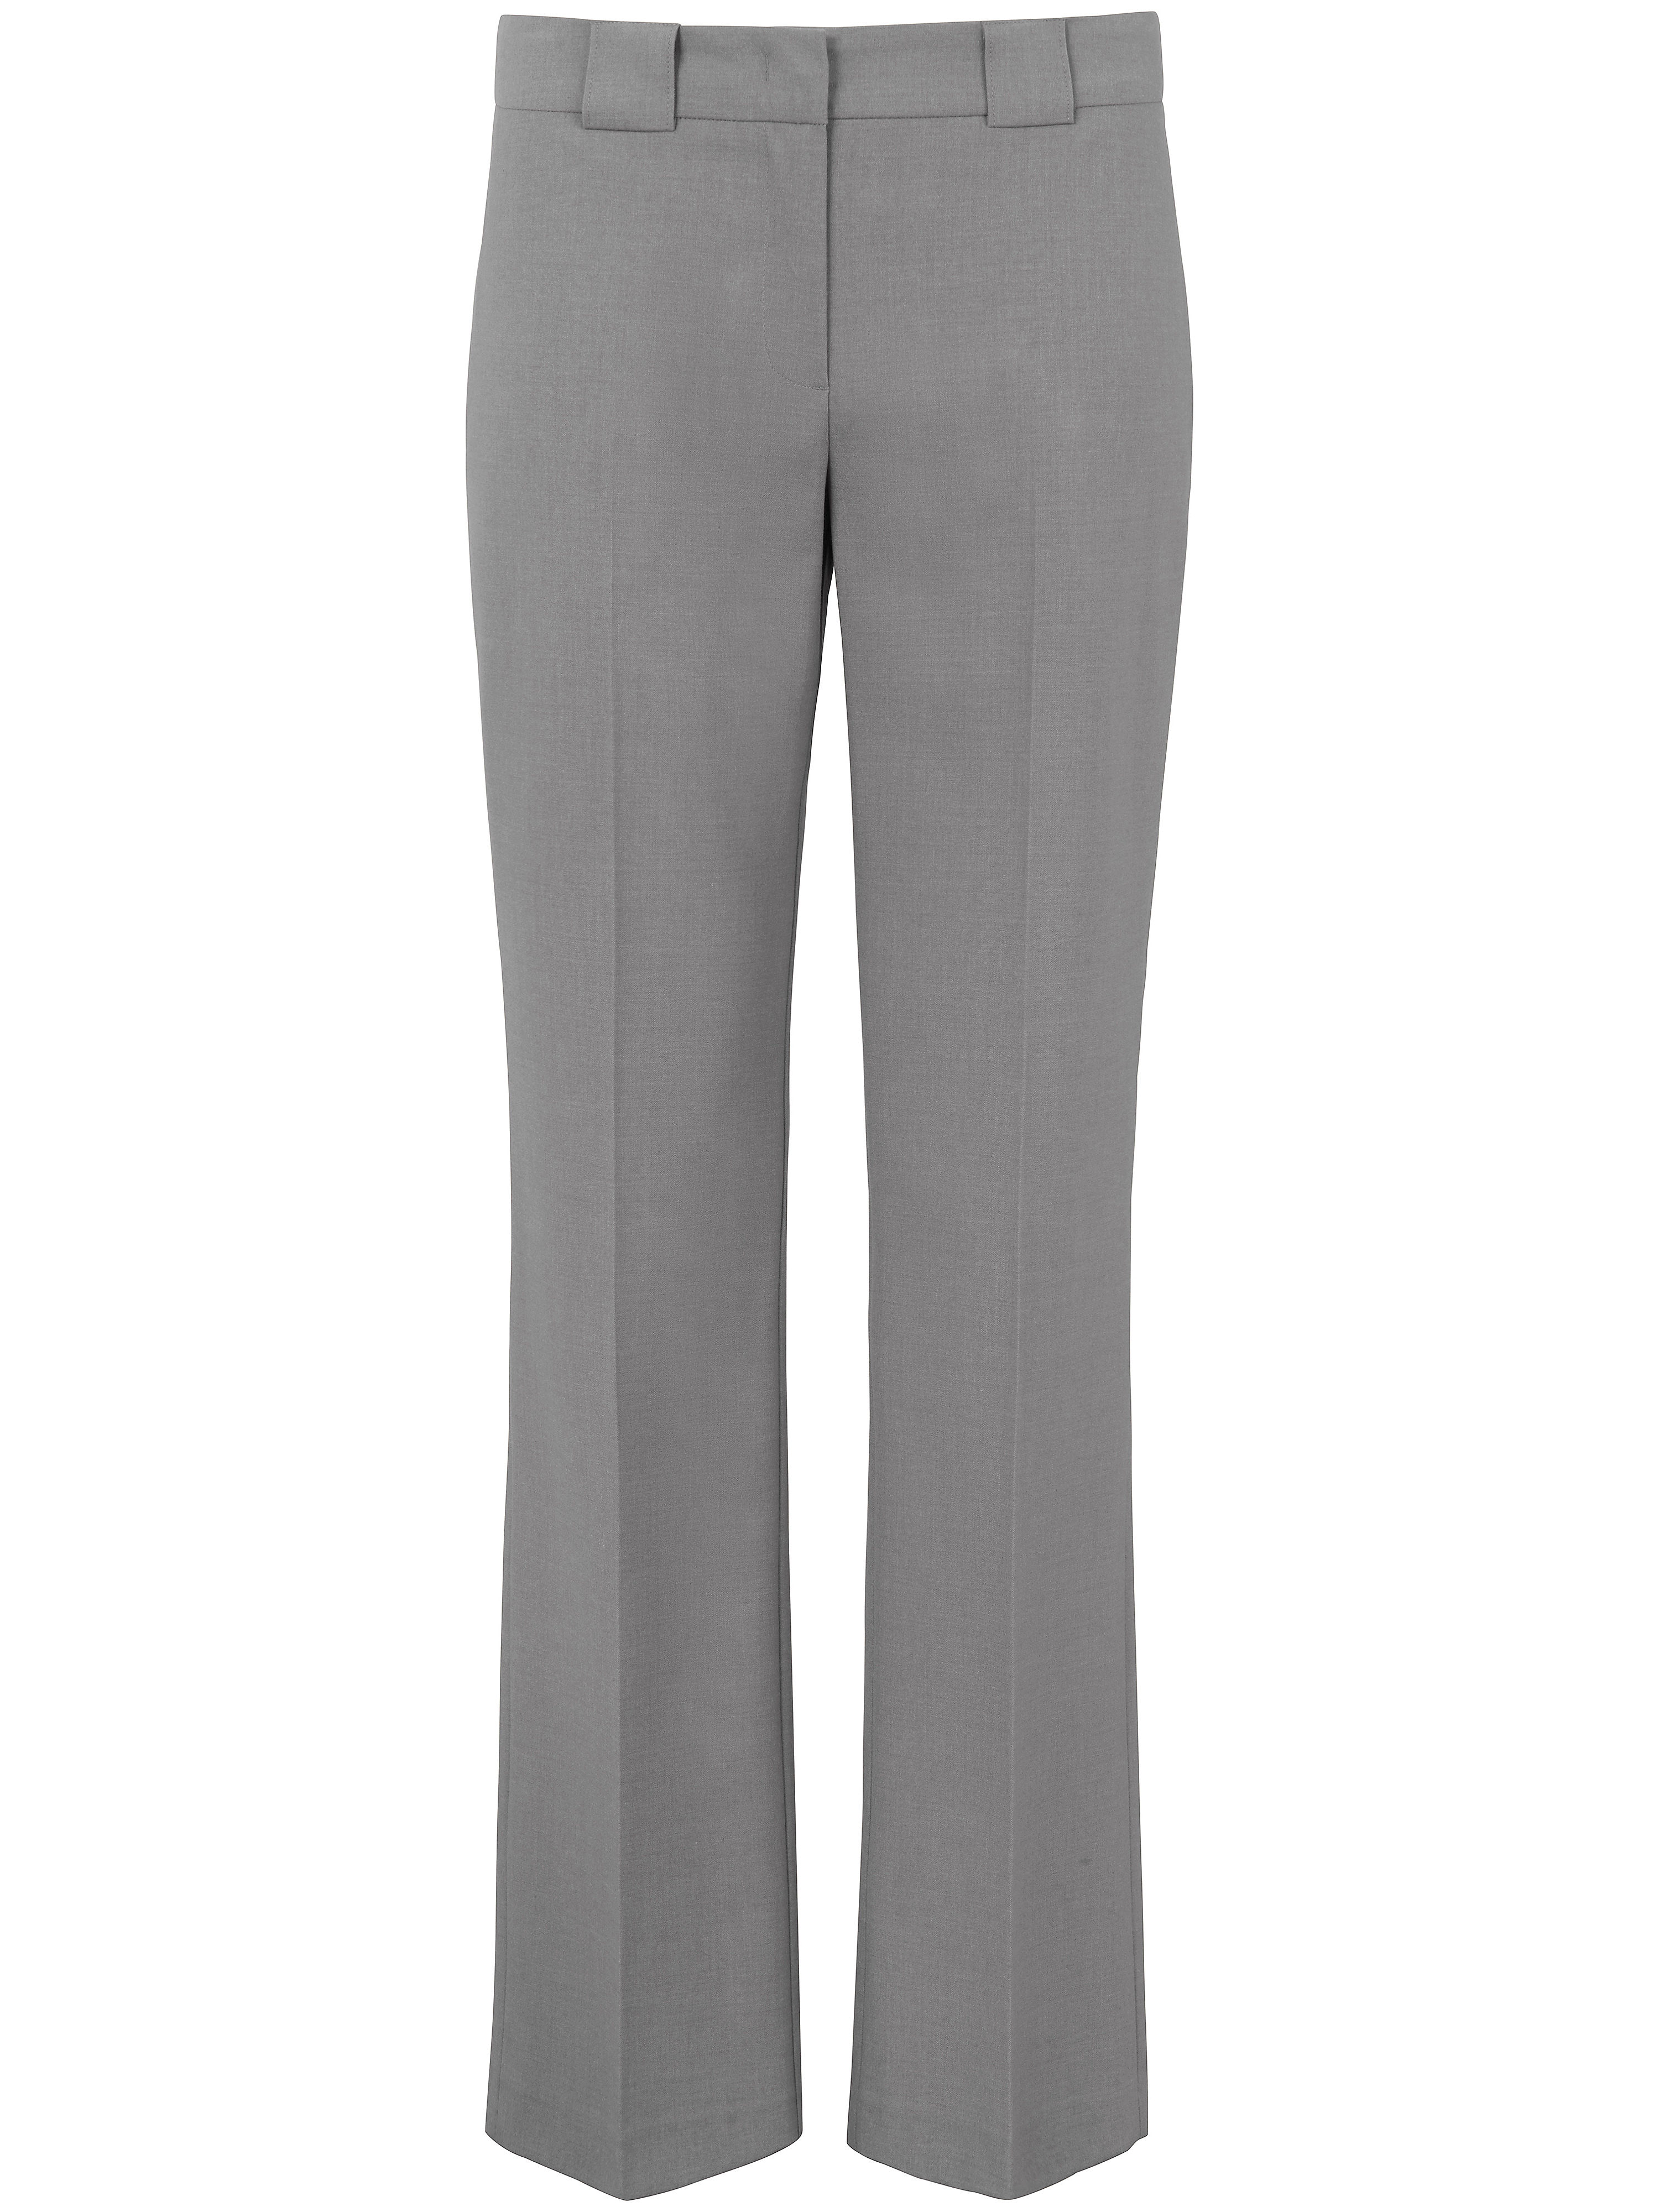 Le pantalon coupe Barbara  Peter Hahn gris taille 19